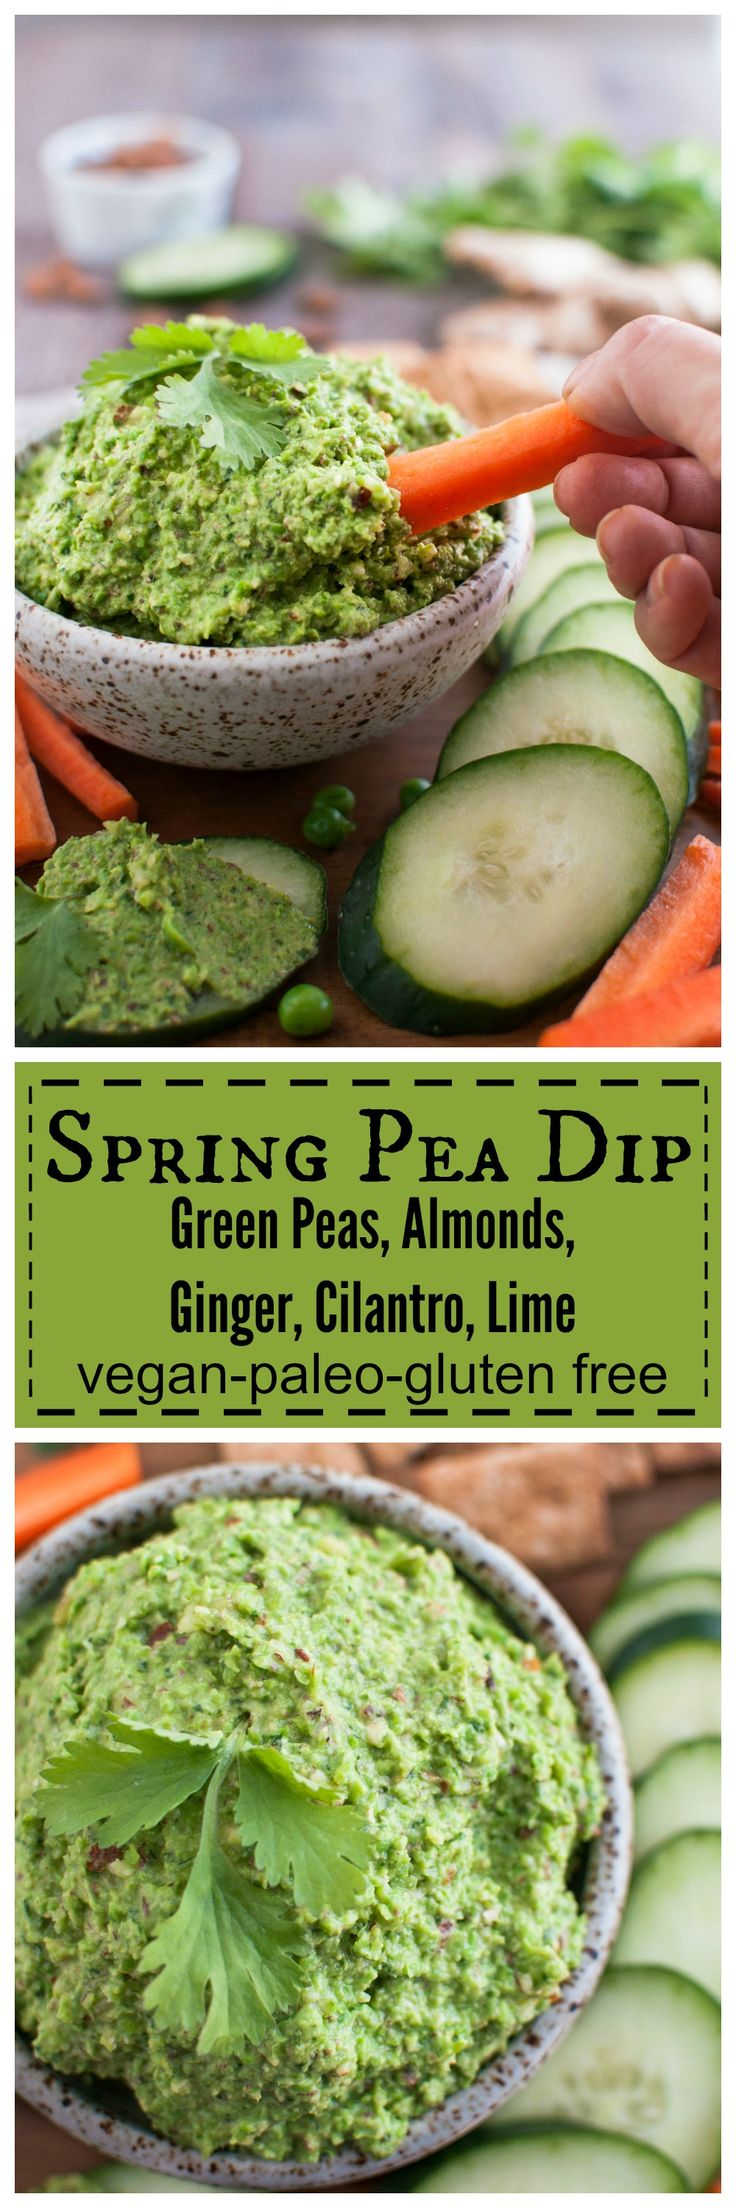 Spring Pea Dip with Amonds, Ginger, Cilantro, and Lime only 5 minutes to make! #vegan #glutenfree #paleo